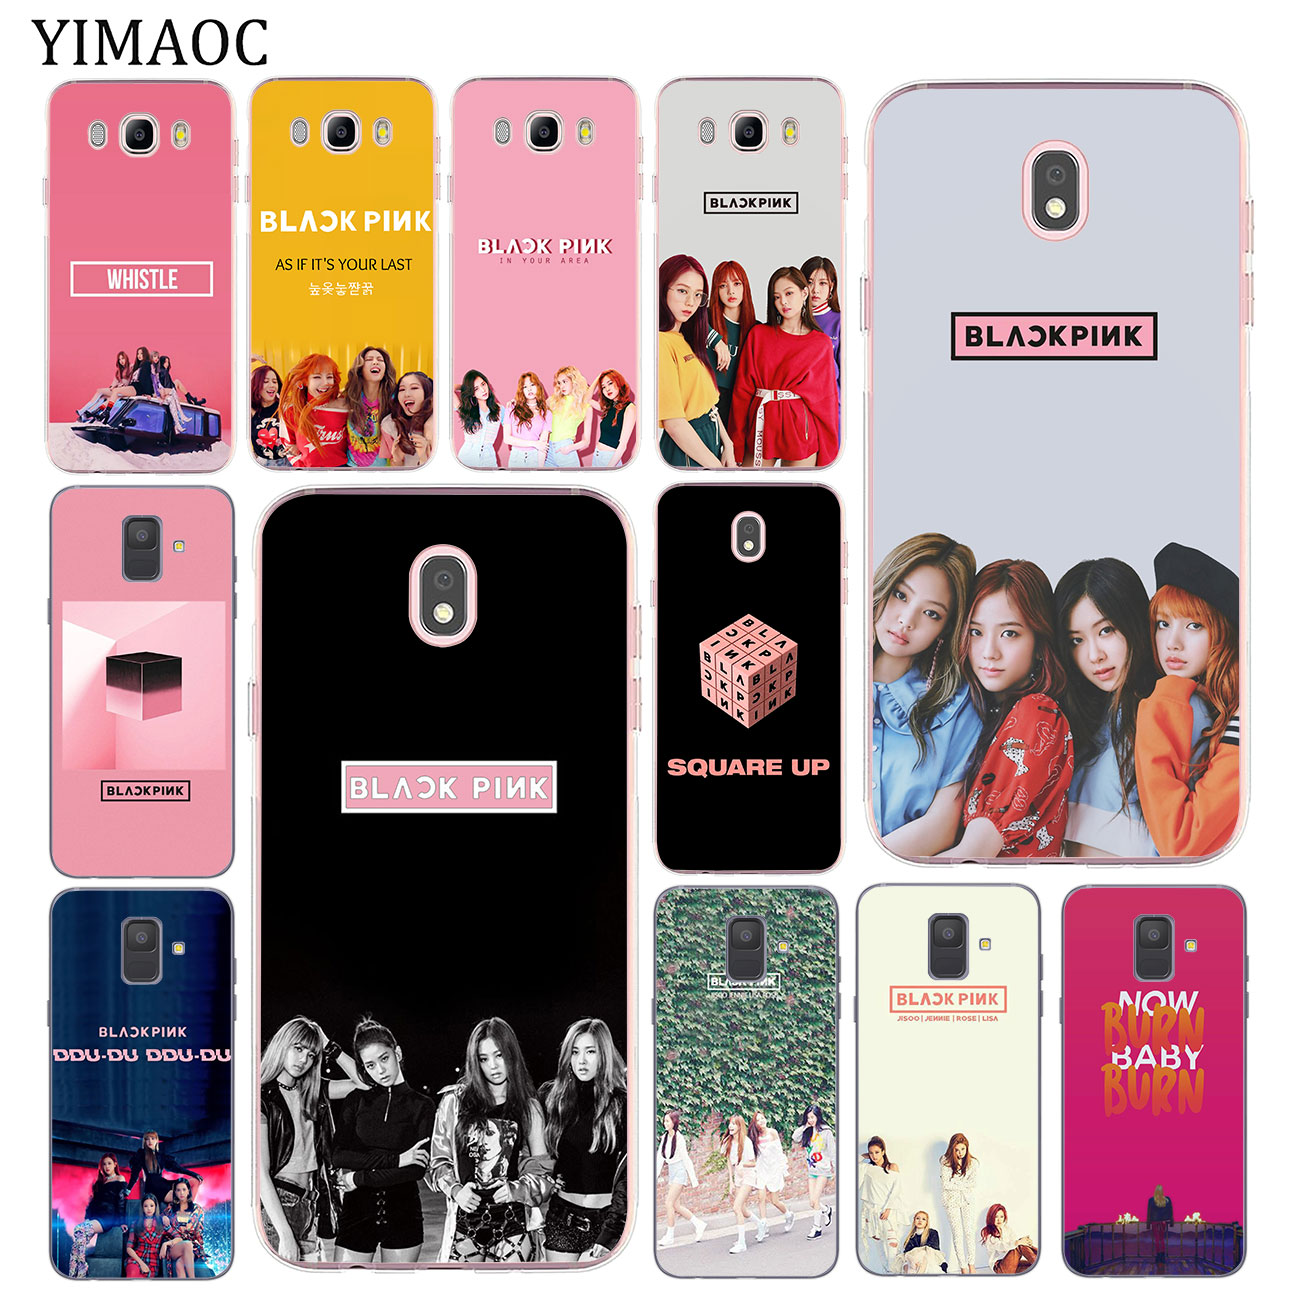 Yimaoc The Good Doctor Soft Silicone Case For Samsung Galaxy A5 A6 Plus A7 A8 A9 2018 J3 J5 J6 J7 2016 2017 Eu Version In Pain Fitted Cases